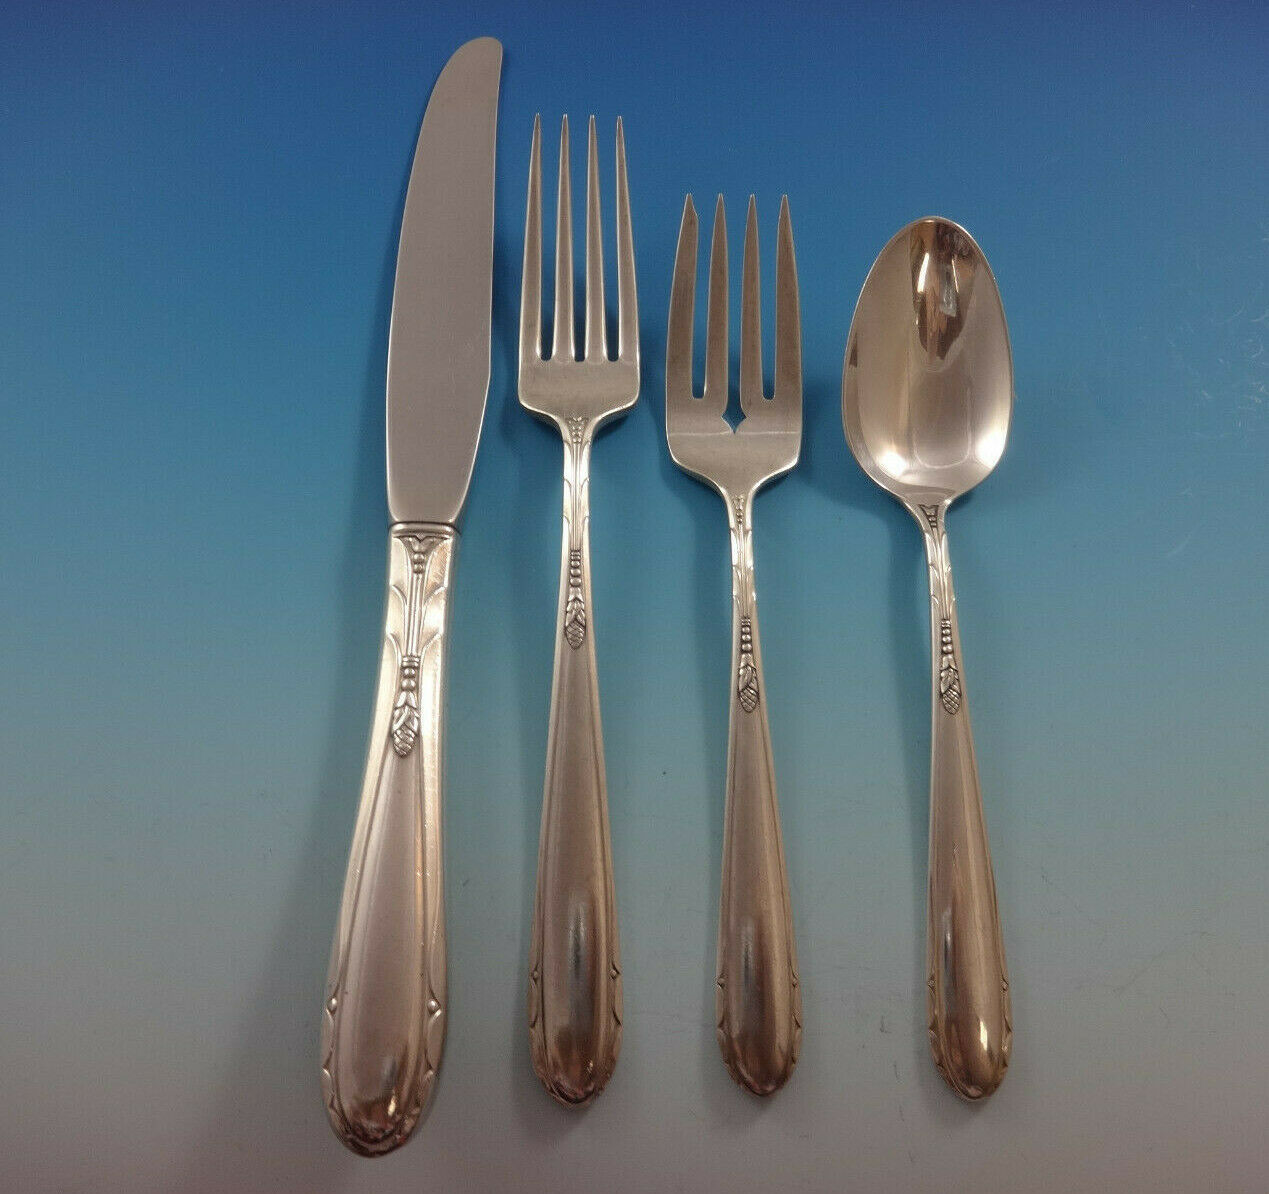 Primary image for Heiress by Oneida Sterling Silver Flatware Set For 8 Service 36 Pieces